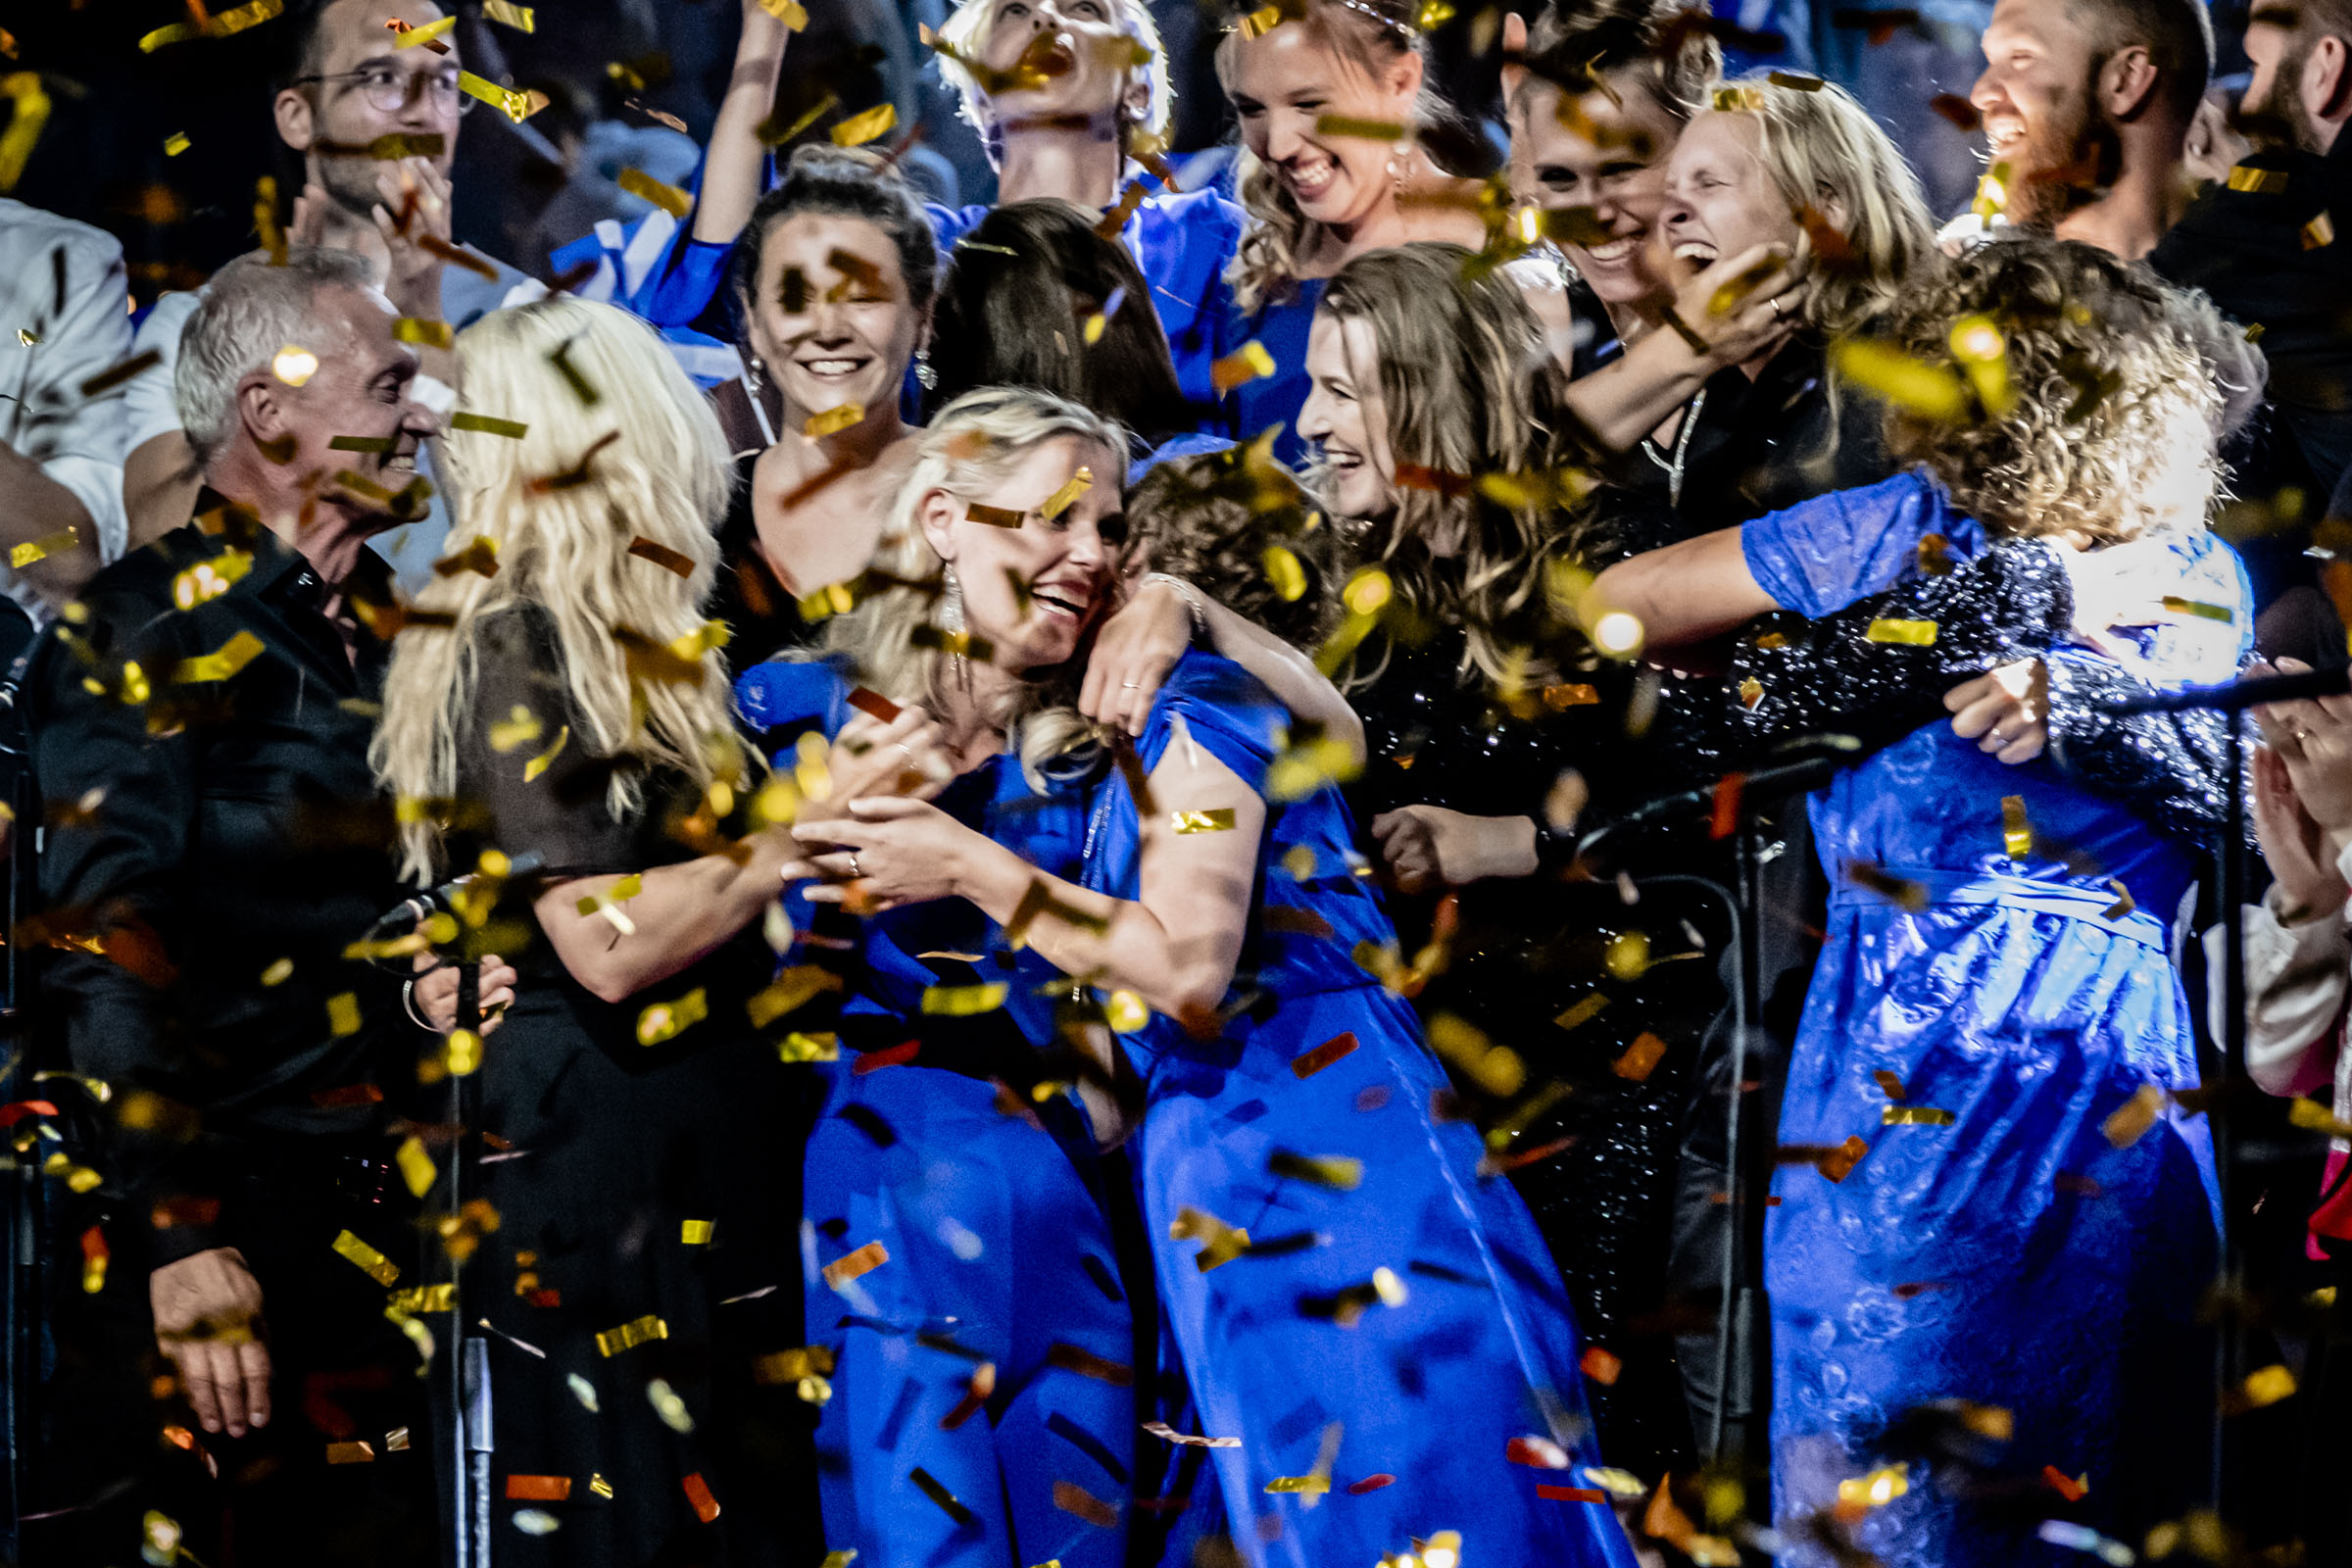 SING FOR GOLD and win the first-ever World Choral Cup